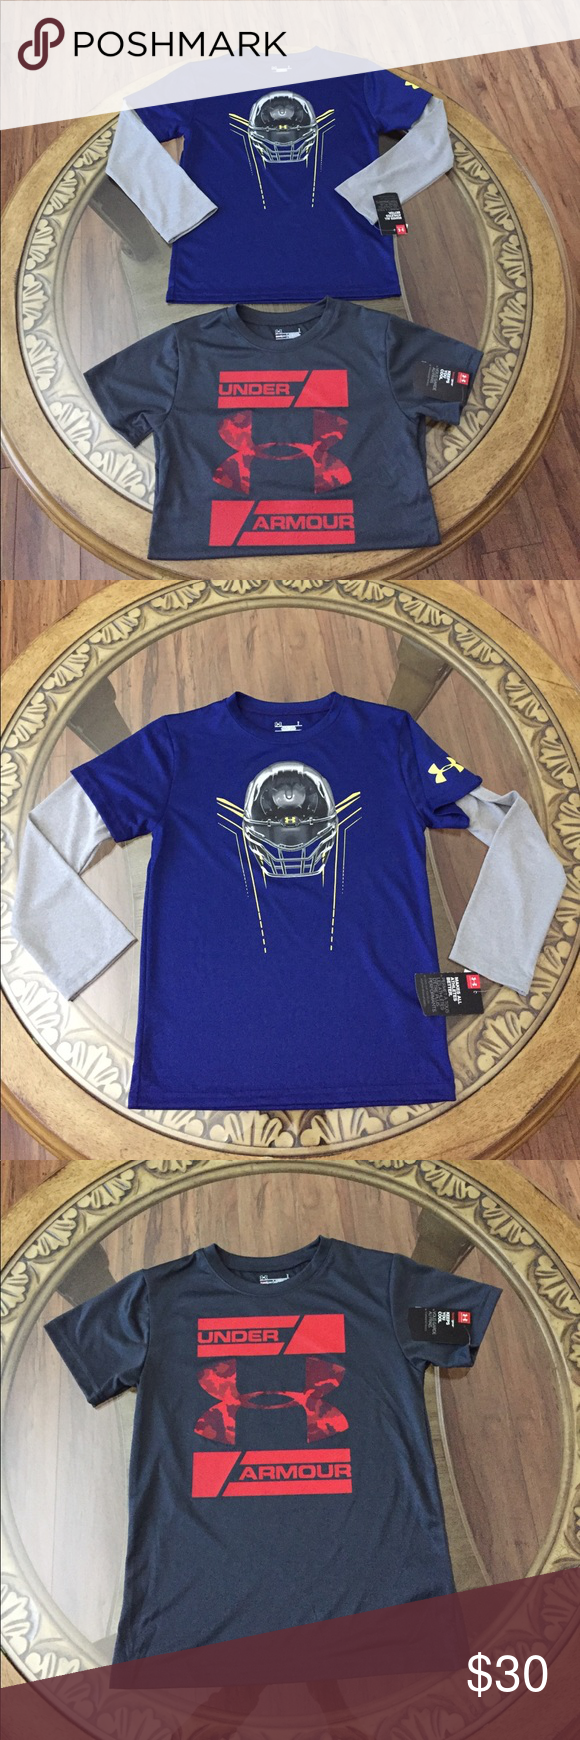 UNDER ARMOUR (YM) BOYS OUTFIT Brand New Under Armour Size